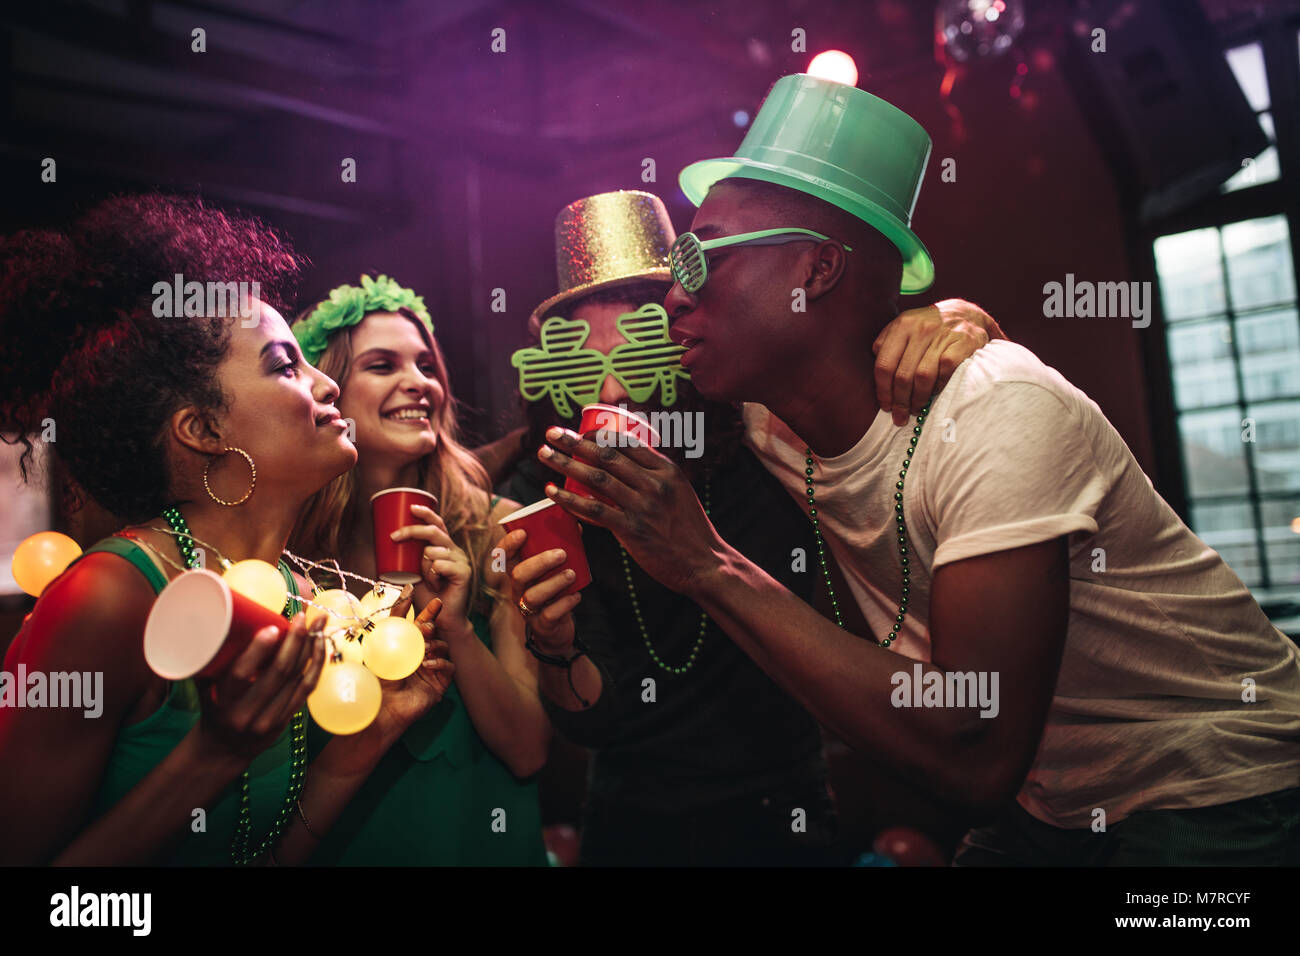 Multi-ethnic men and women having fun at the bar. Group of friends celebrating St. Patrick's Day at nightclub. - Stock Image